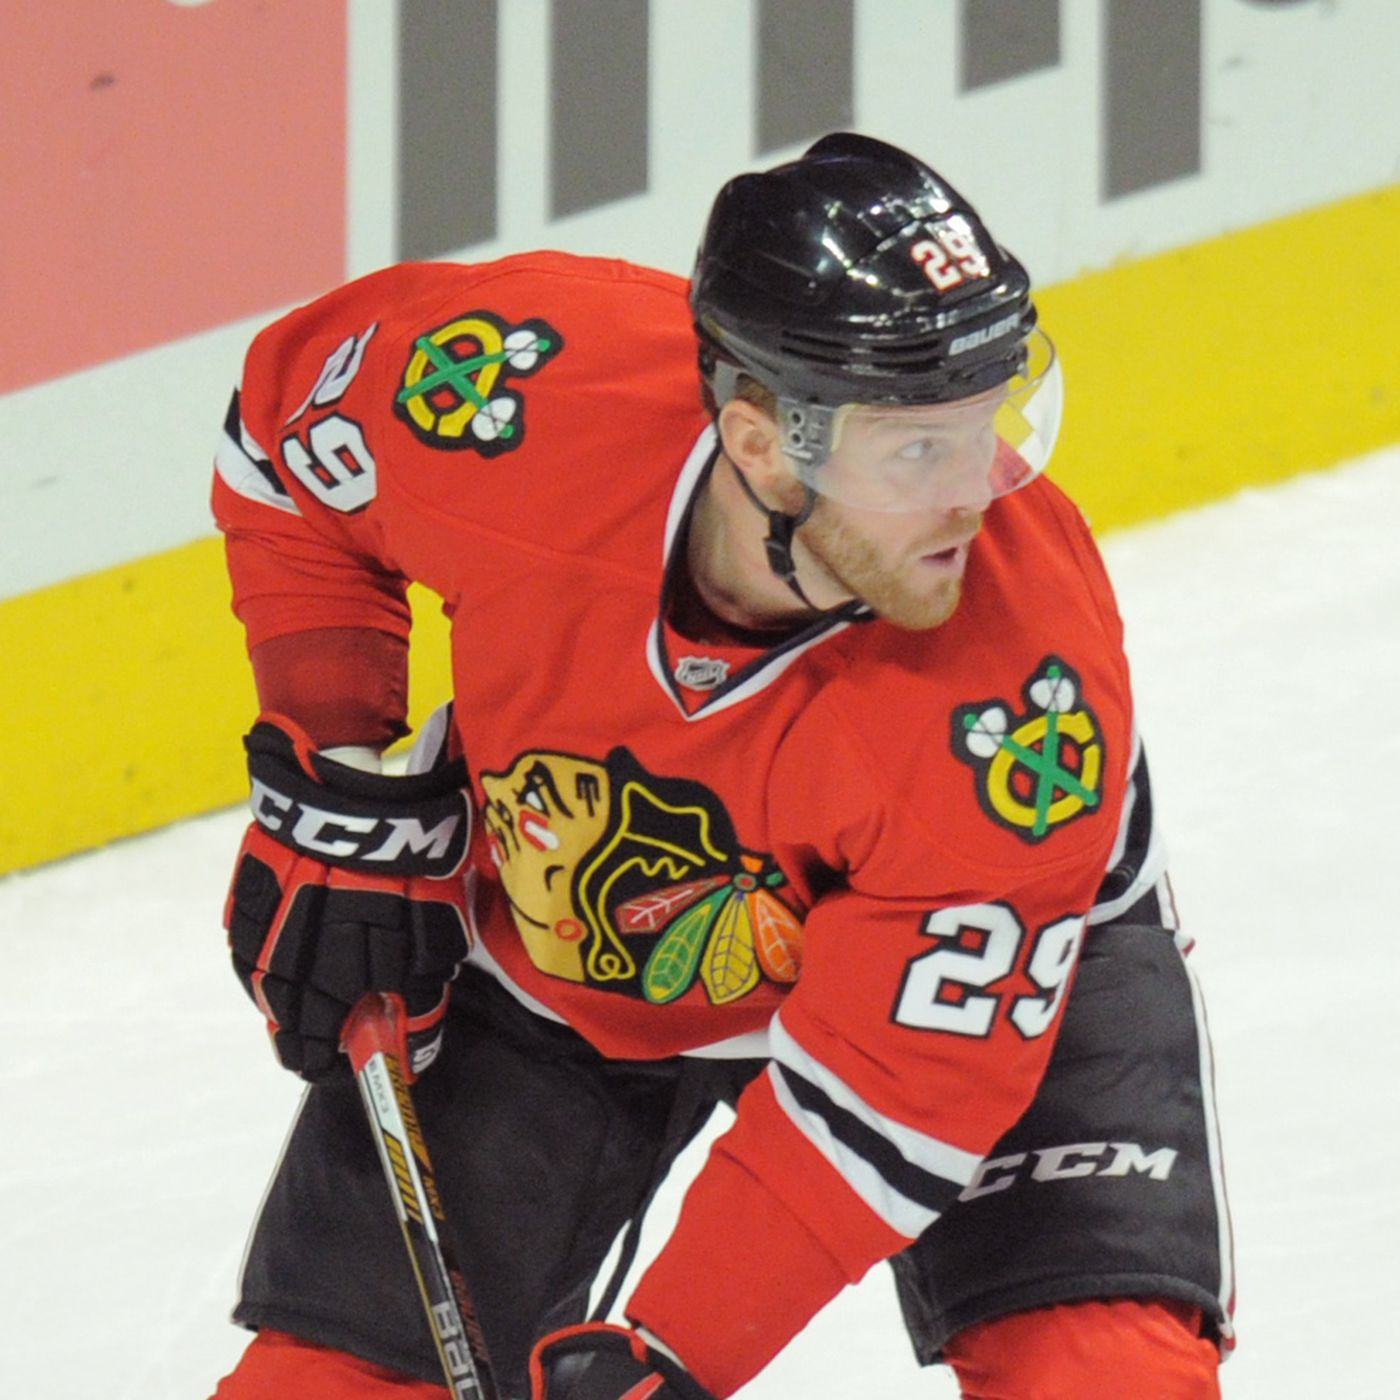 Dead weight magnifies Blackhawks  salary cap woes entering offseason ... a5ee6b25583